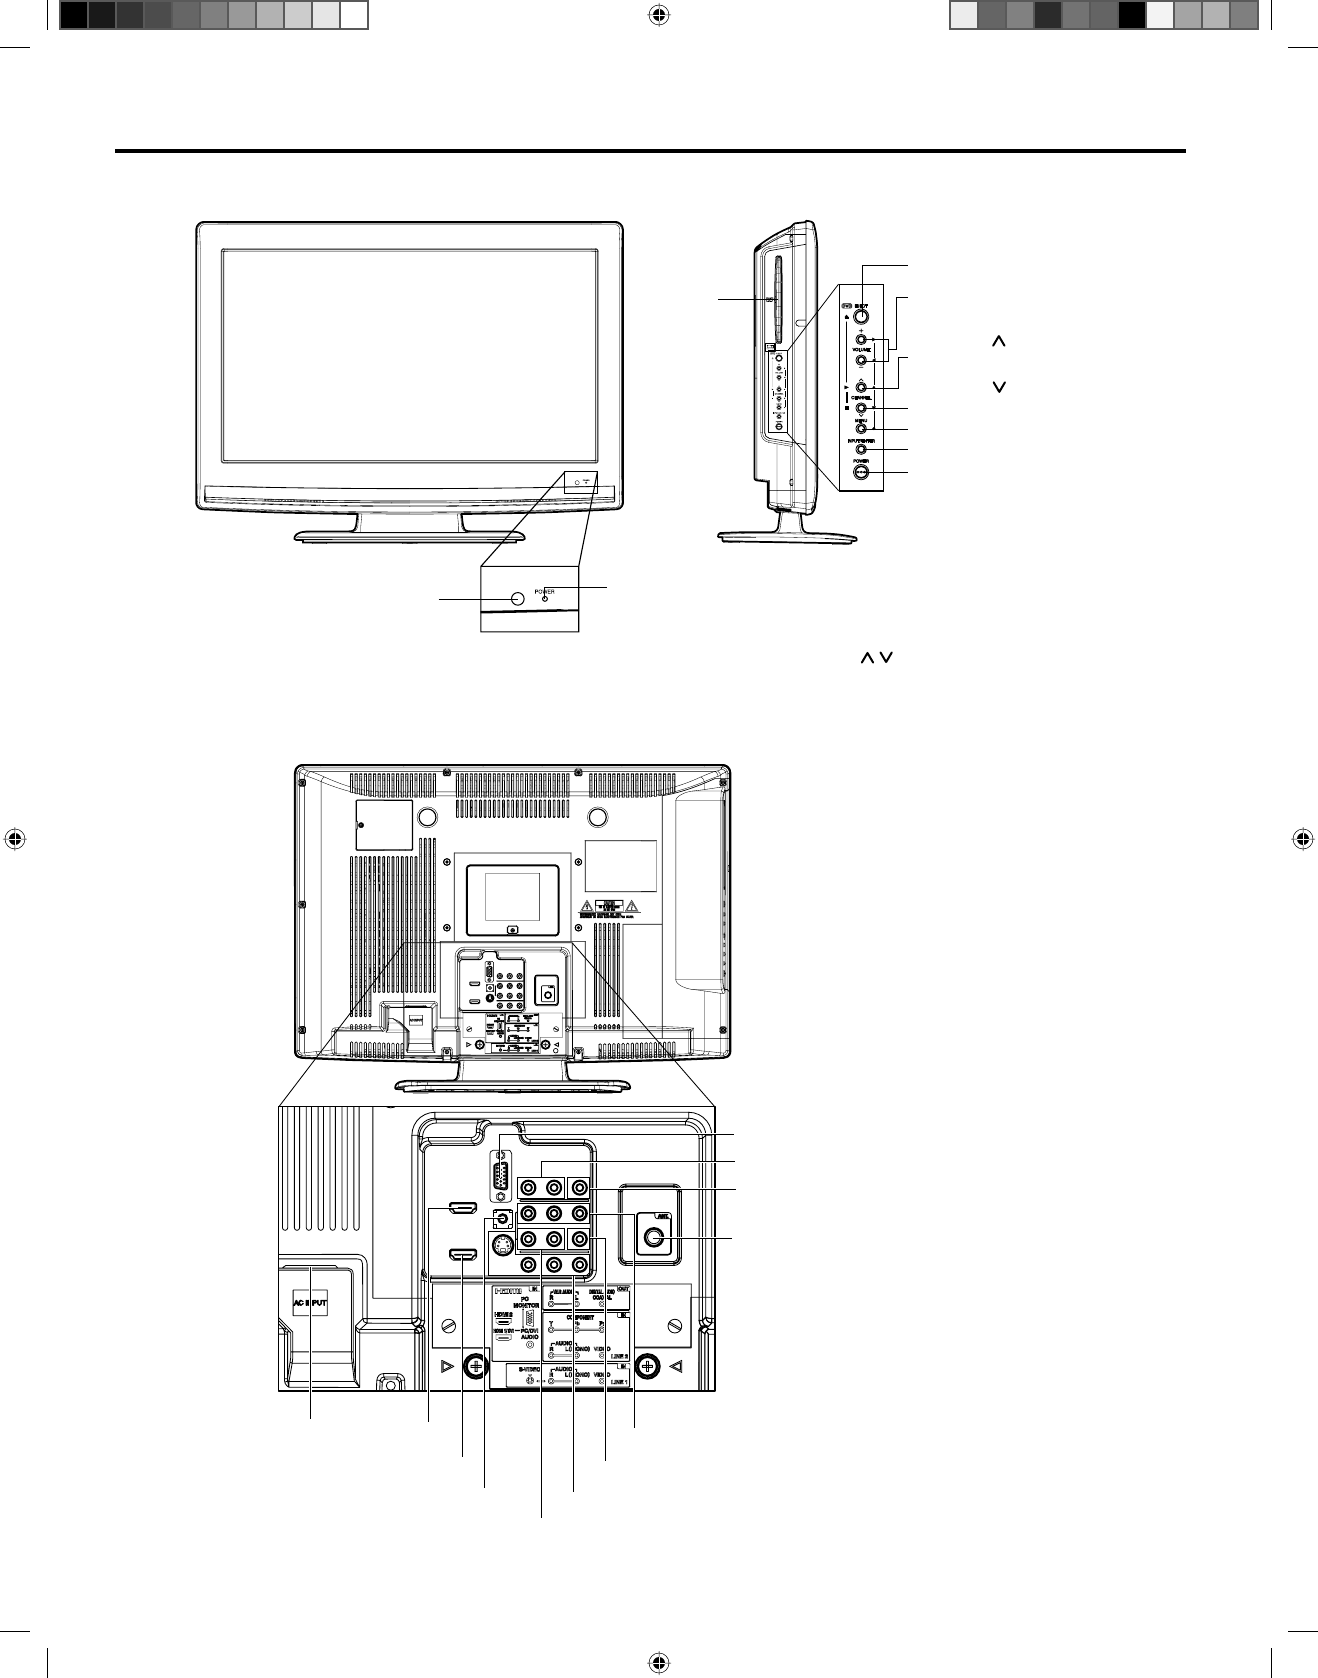 Page 10 of Hitachi Flat Panel Television L26D204 User